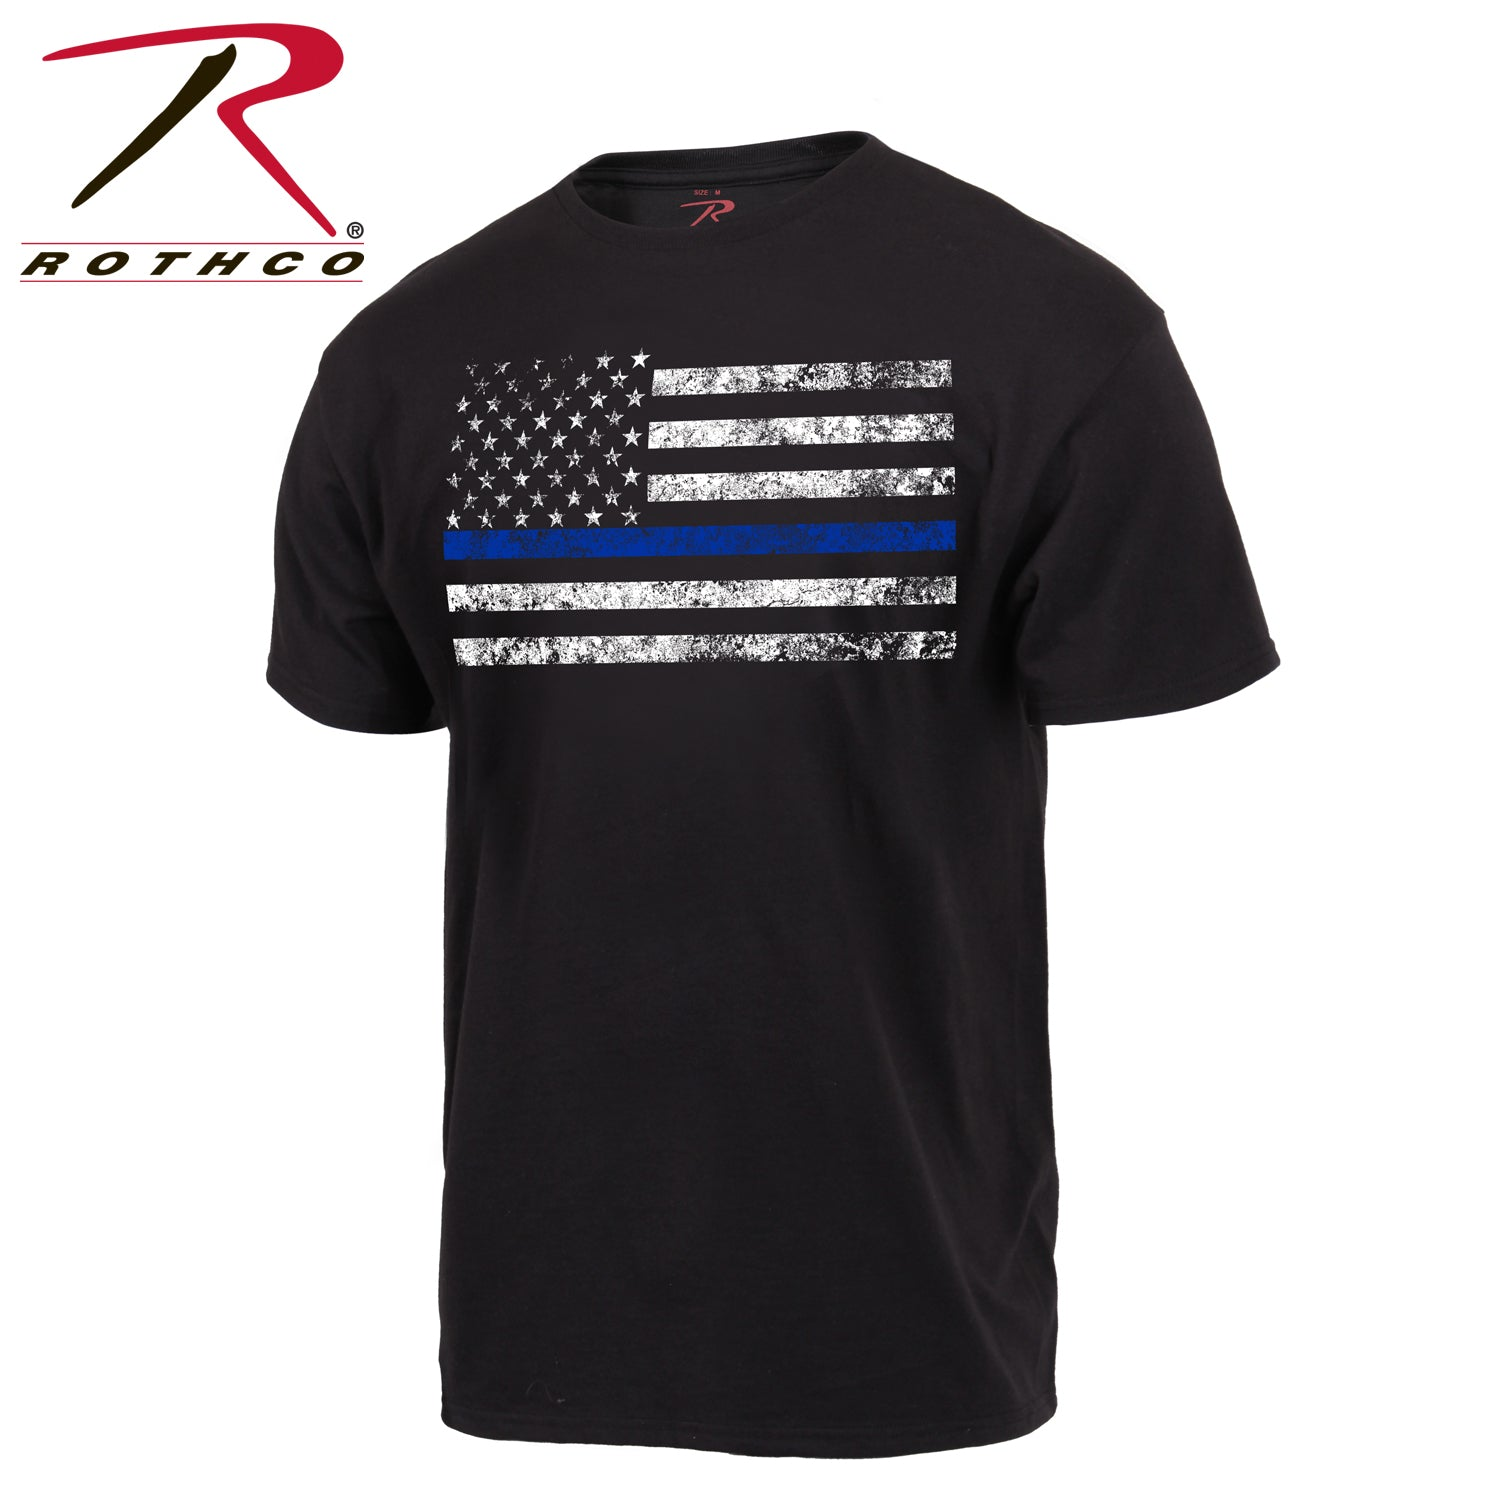 Rothco Thin Blue Line T-Shirt